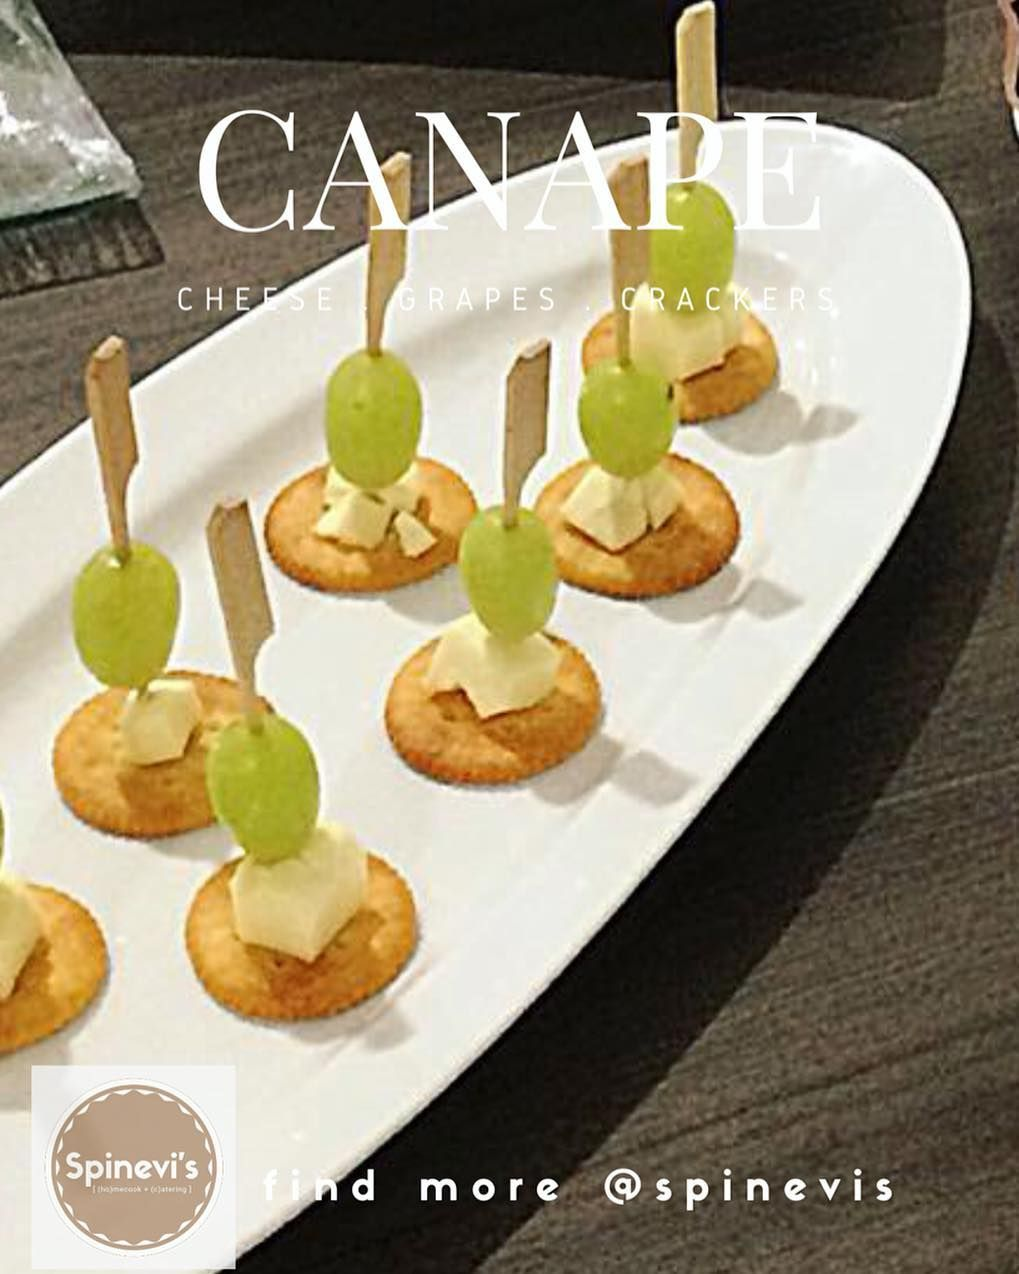 Spinevi S On Instagram Canape Spinevis Is A Small Prepared And Usually Decorative Food Consisting Of A Small Piece Of In 2020 Piece Of Bread Food Puff Pastry